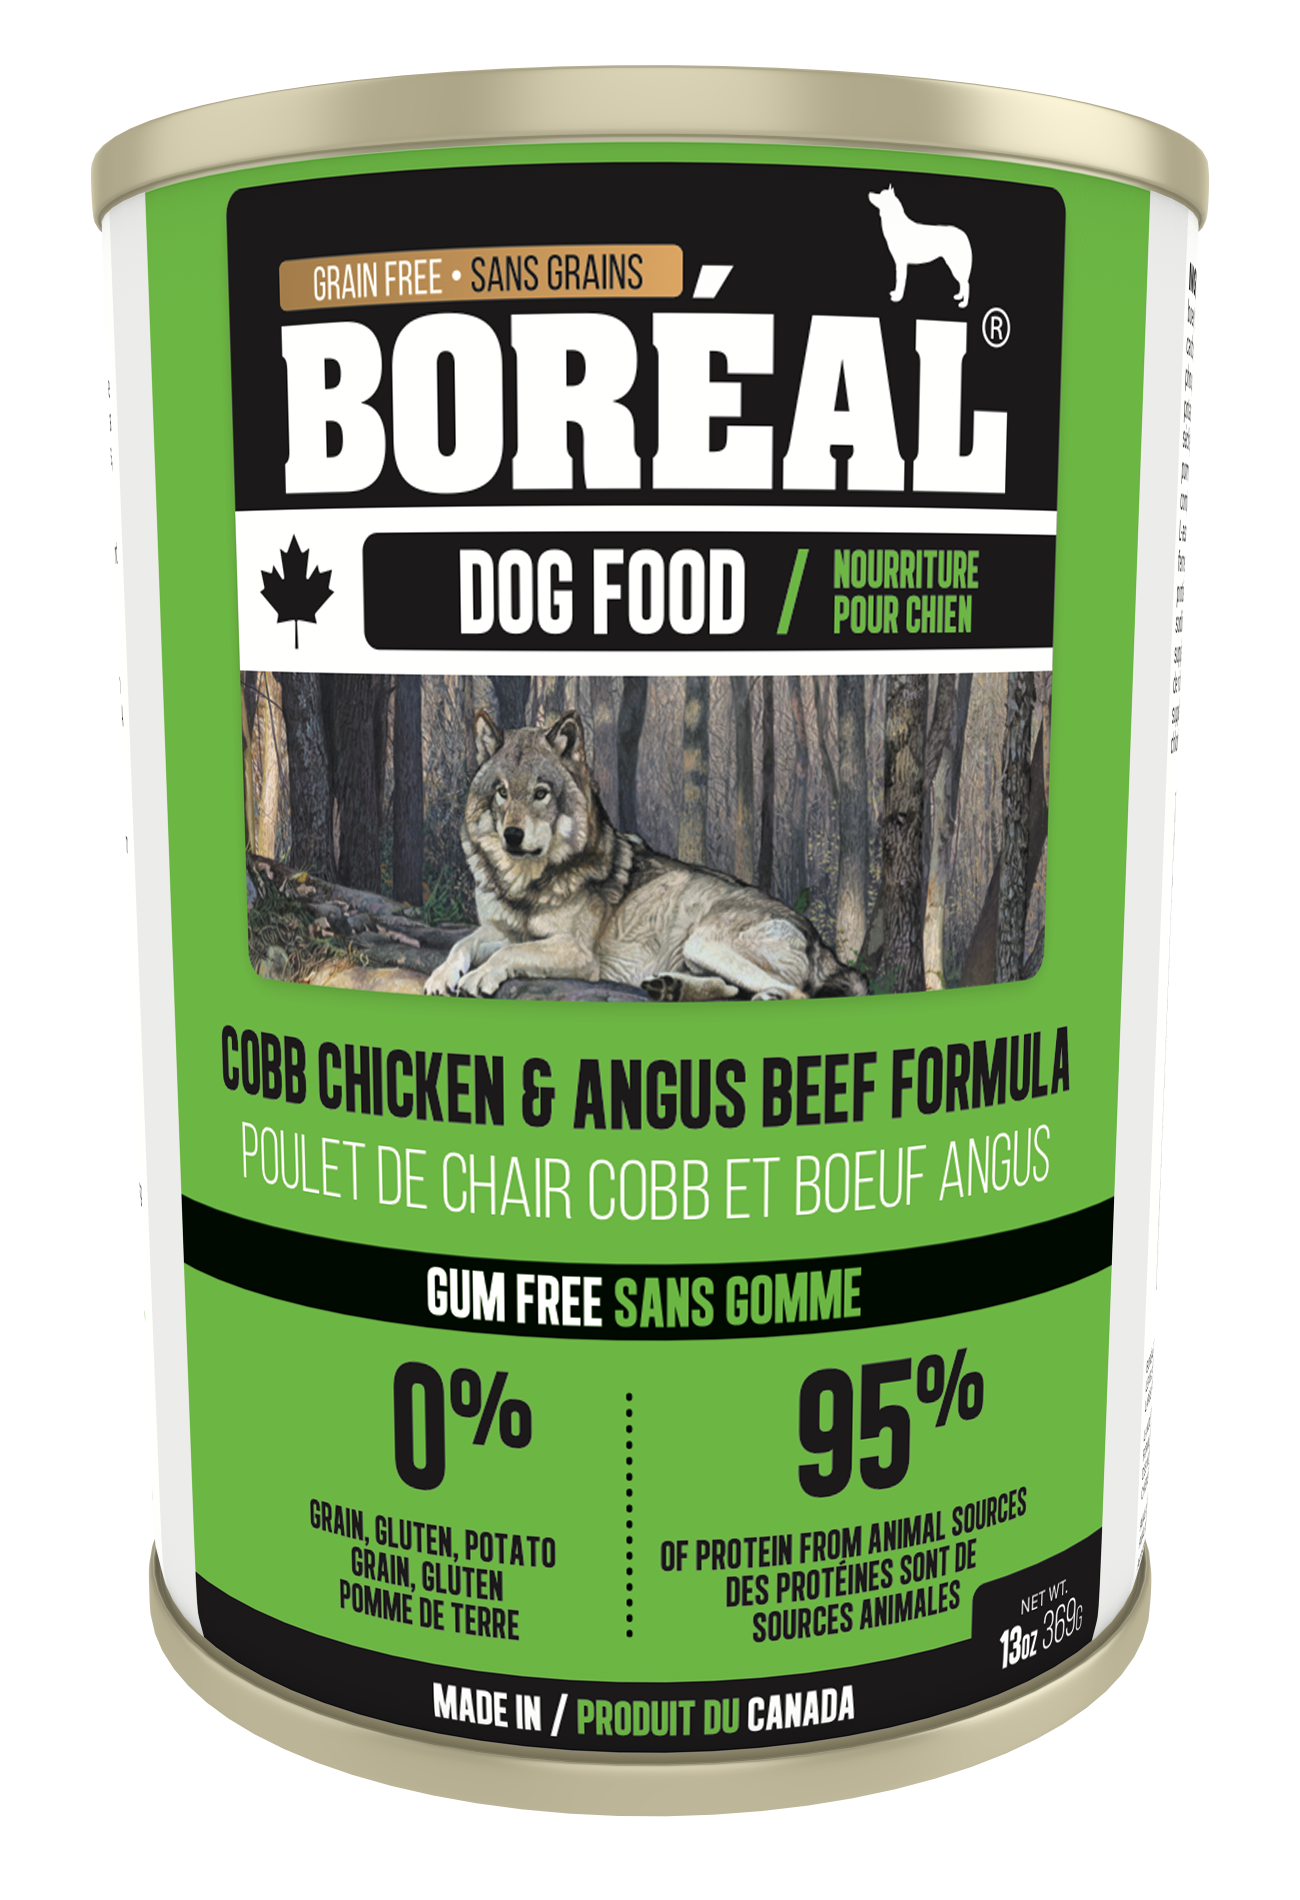 Boreal Grain-Free Canadian Cobb Chicken and Angus Beef Canned Dog Food, 369g can